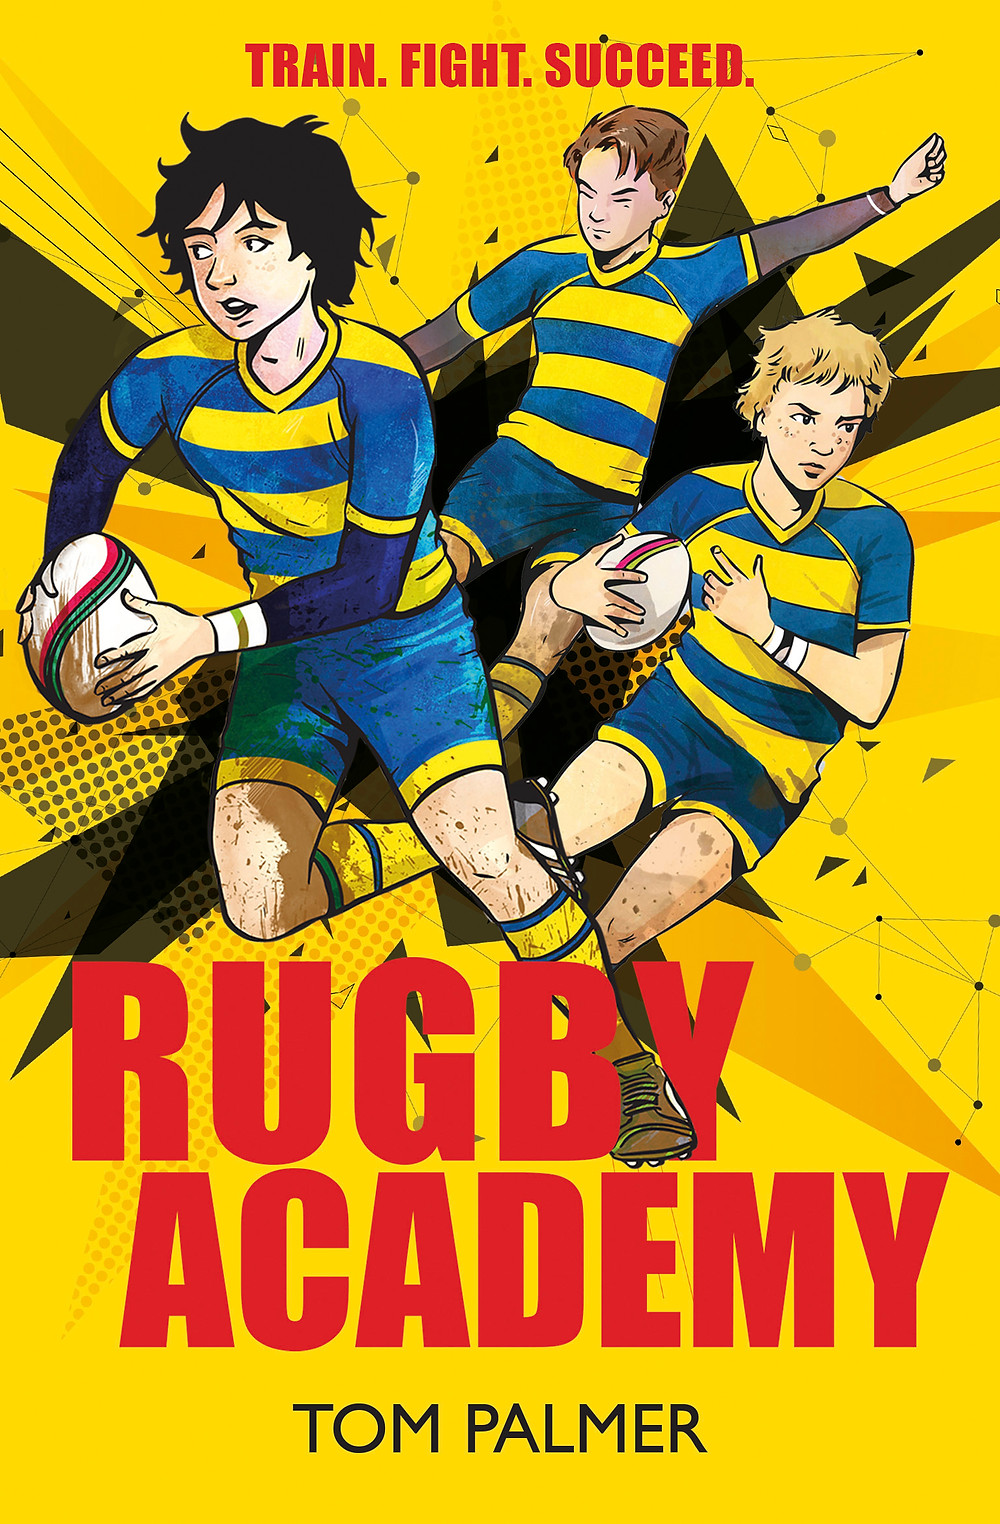 Rugby Academy, a children's book about a rugby team and the adventures they face together